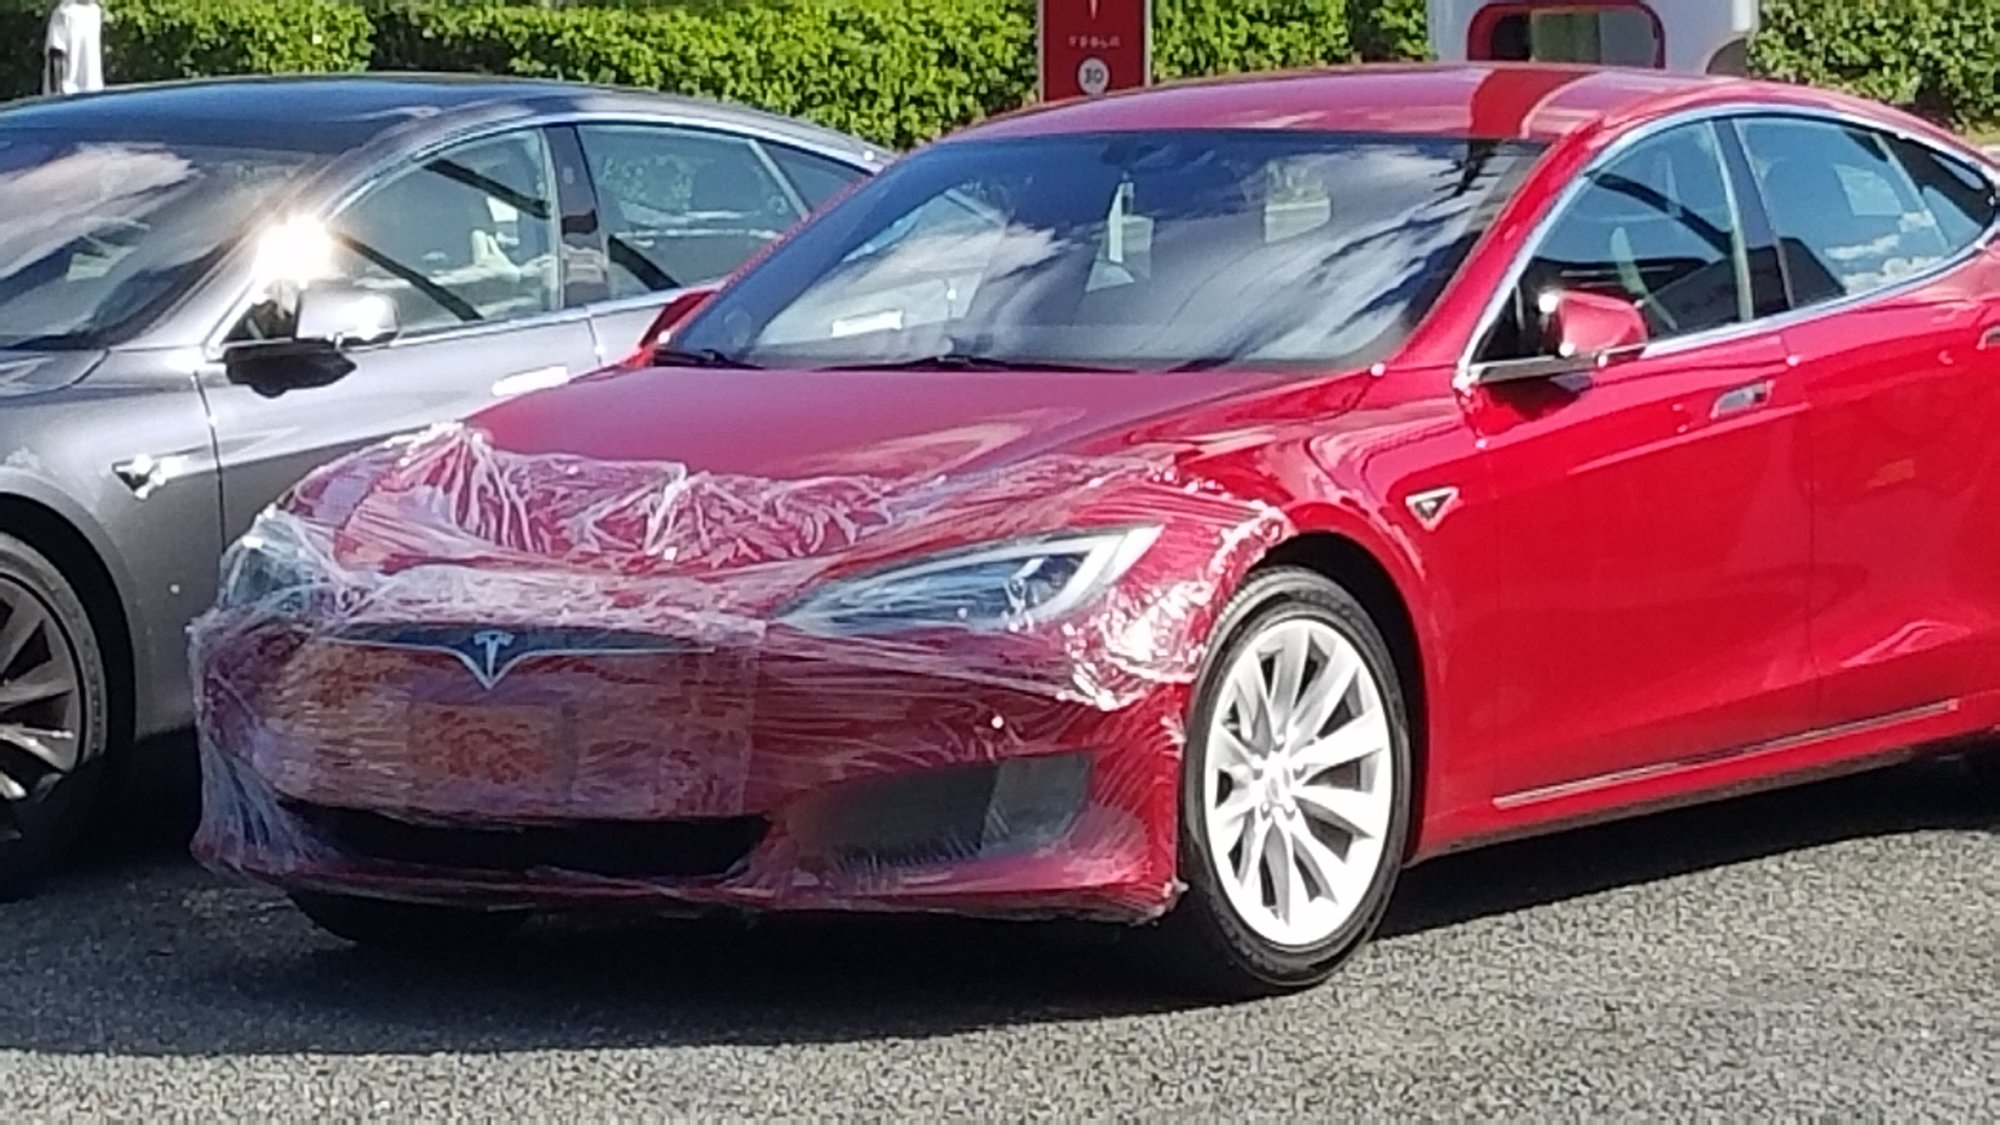 Tesla Model S with BAD WRAP.jpg